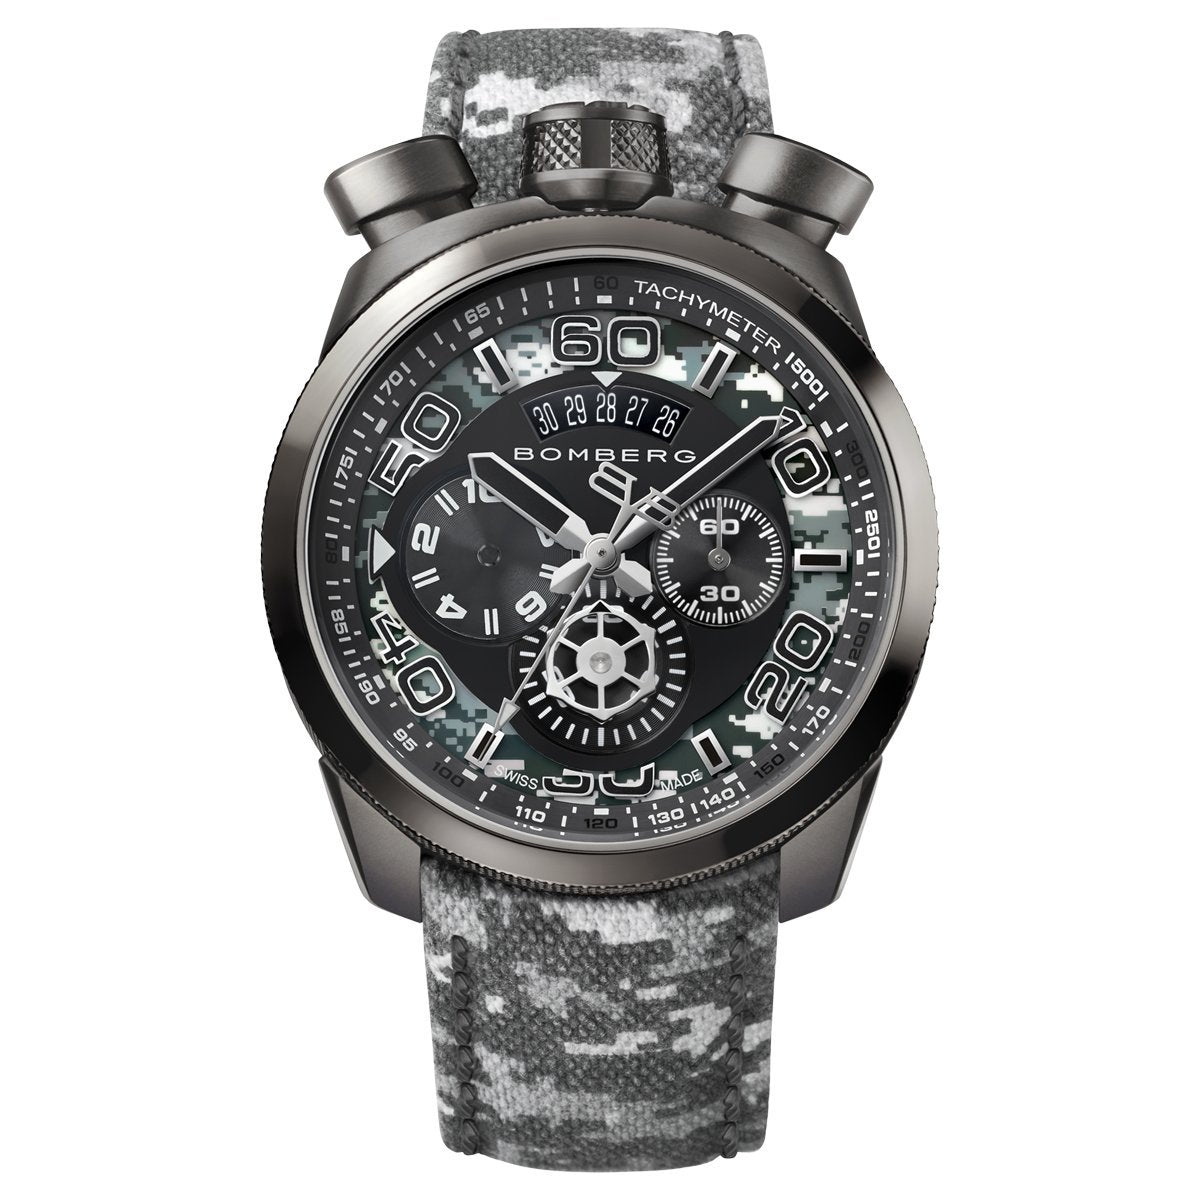 Bomberg BOLT-68 Chronograph Winter Camo